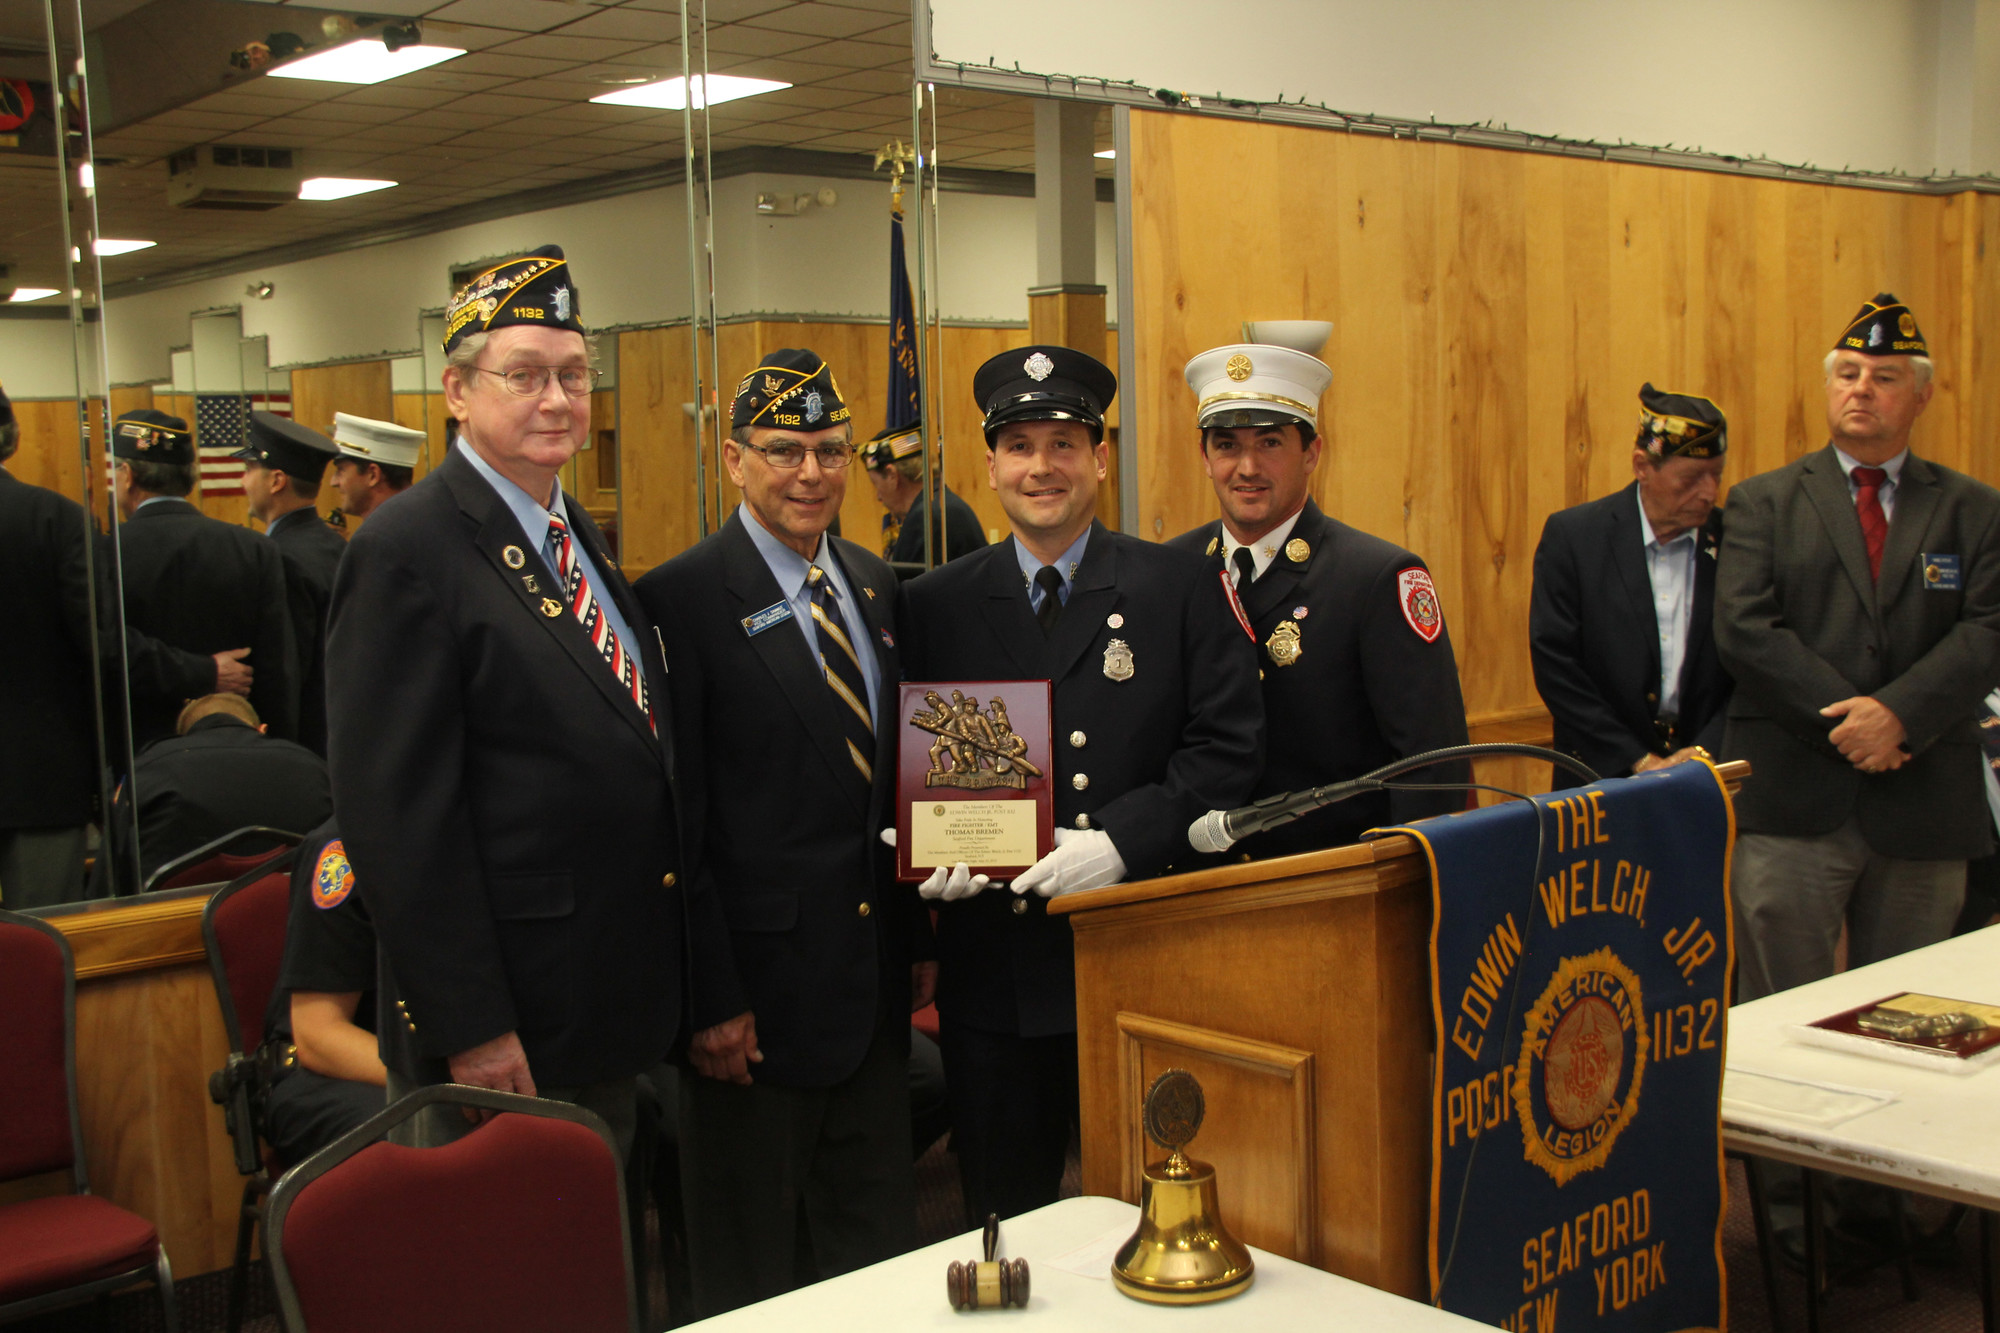 Thomas Bremen, a Seaford firefighter and AMT, accepted a Legion Law and Order award for his life-saving actions.